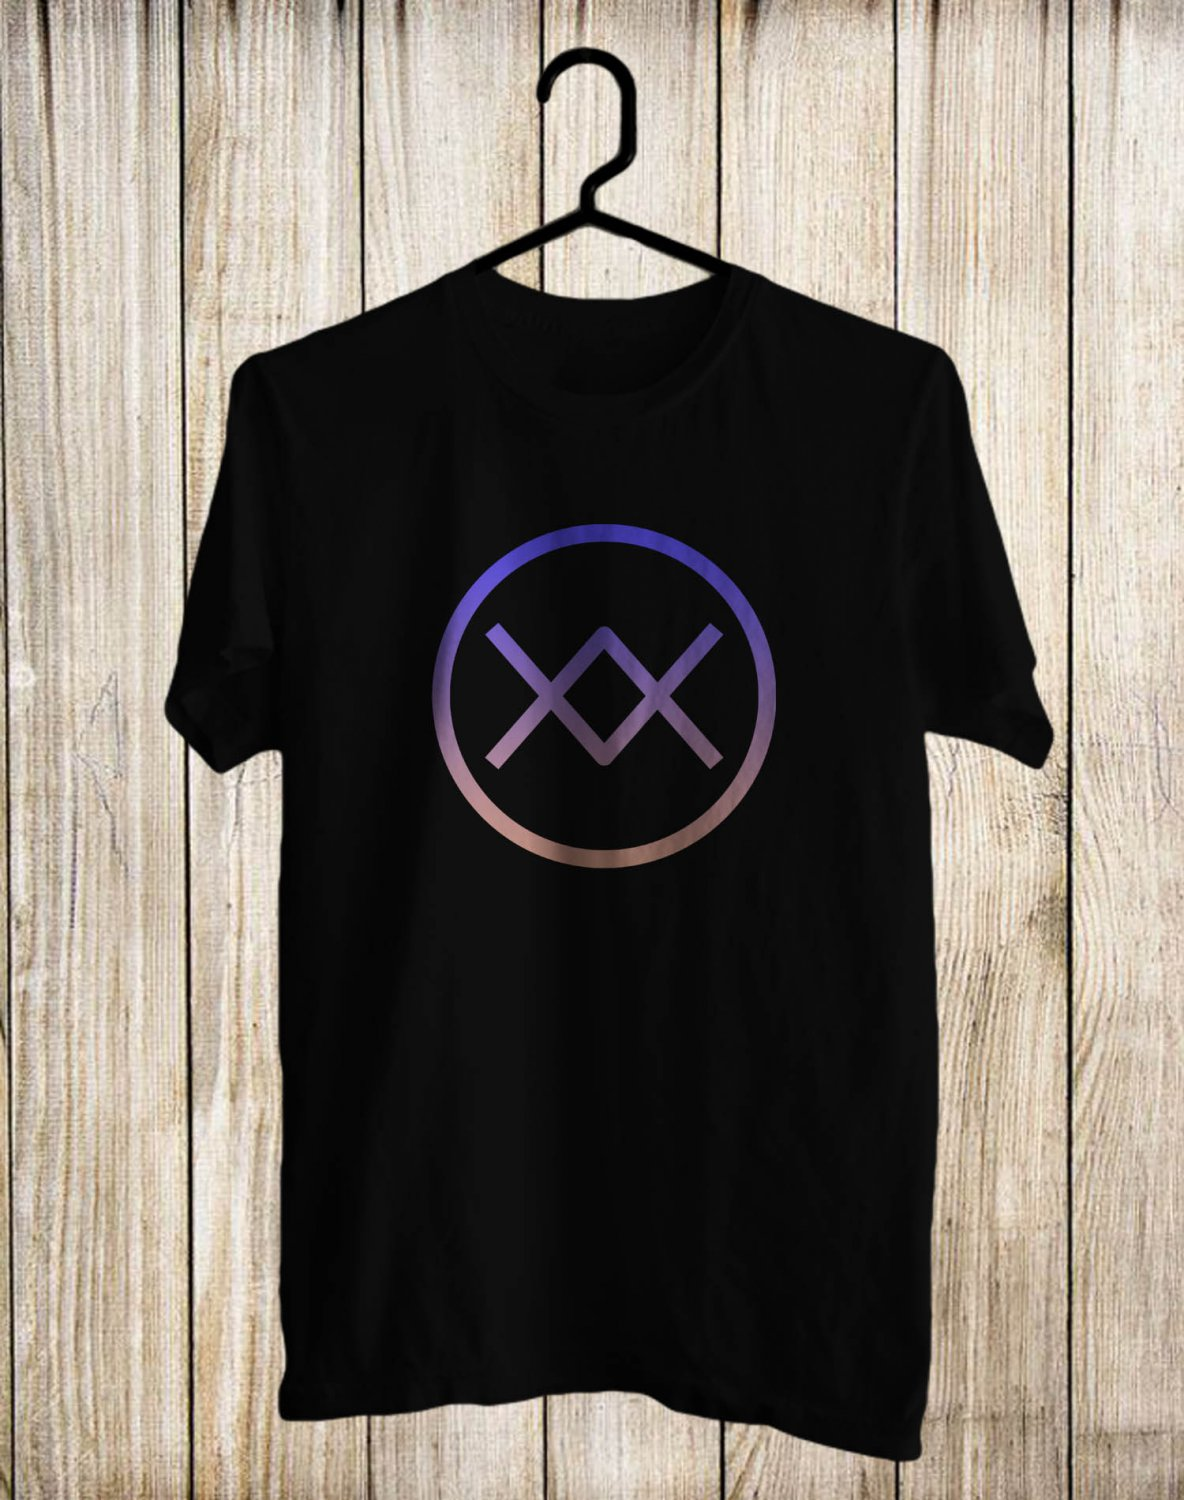 Hinterland Music Festival Logo Black Tee's Front Side by Complexart z1